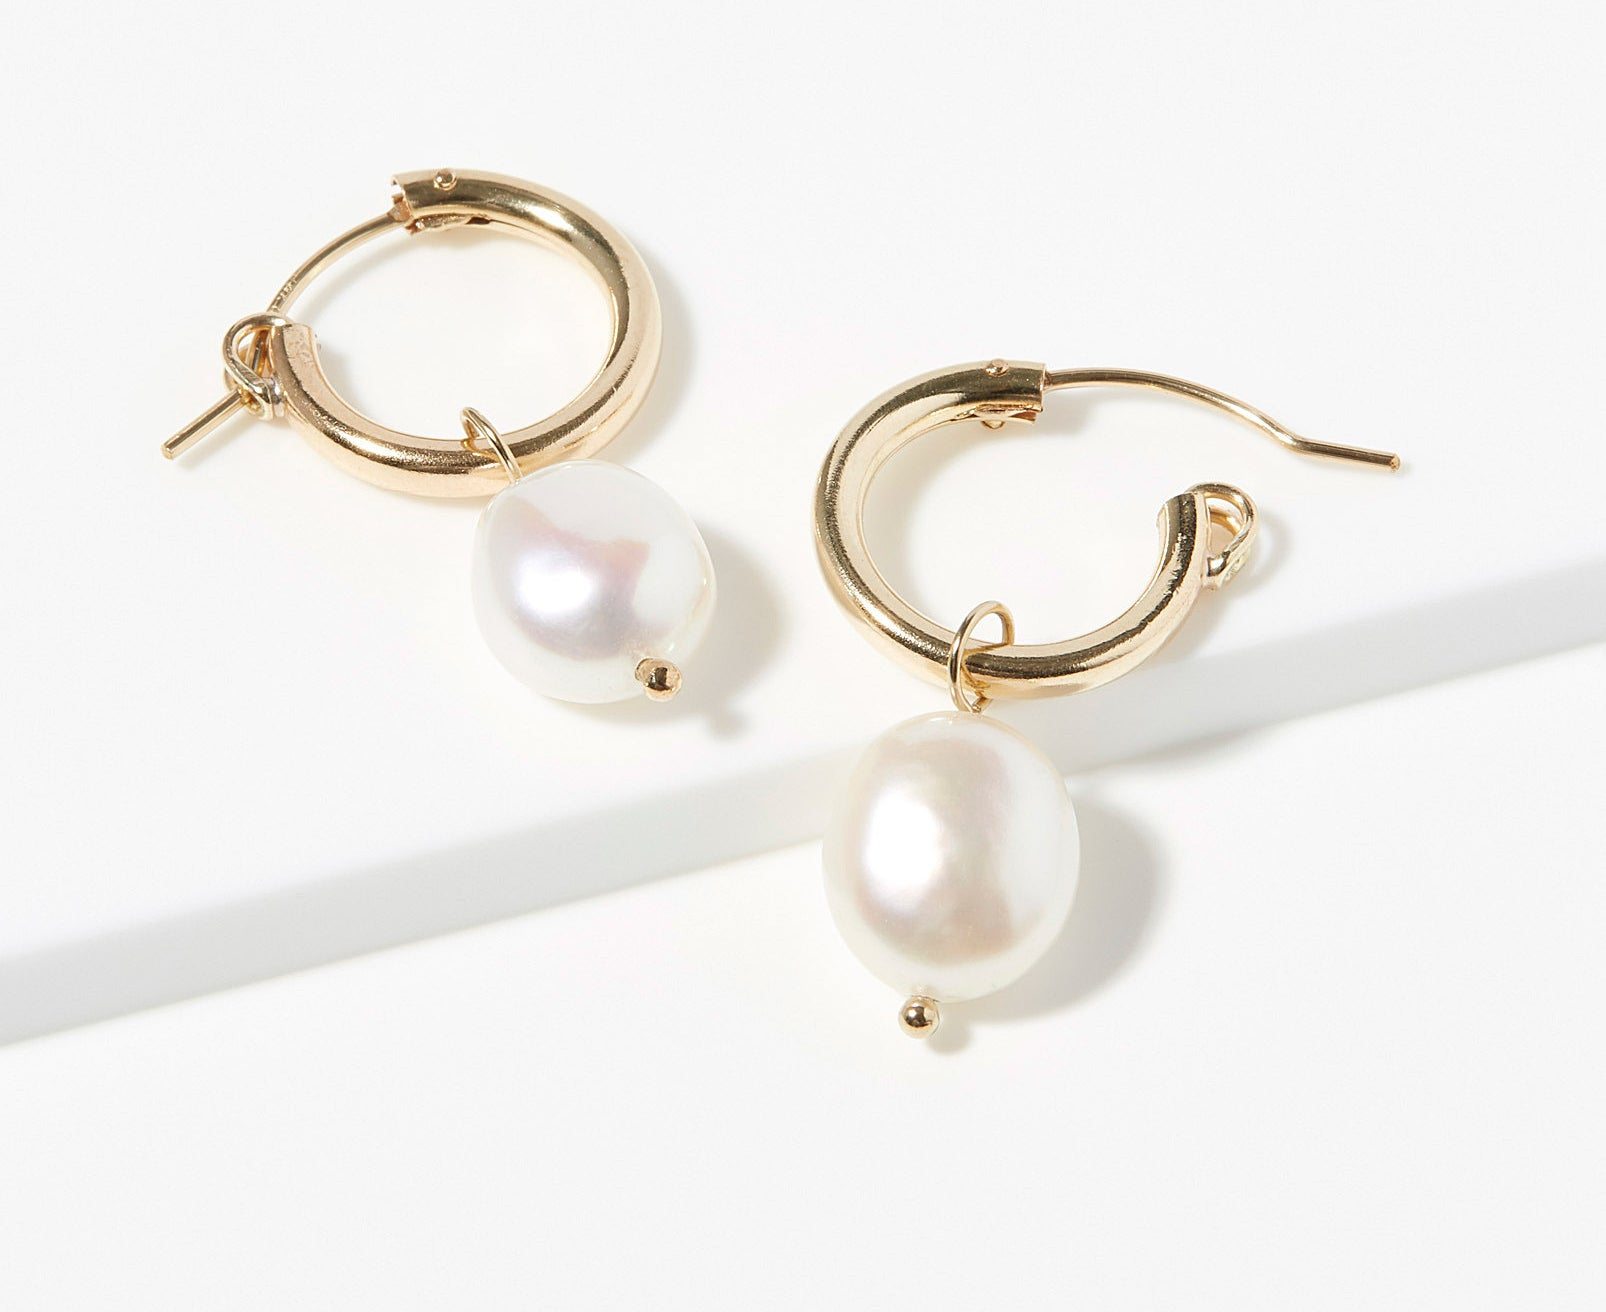 A pair of tiny hoop earrings with a pearl hanging from the bottom